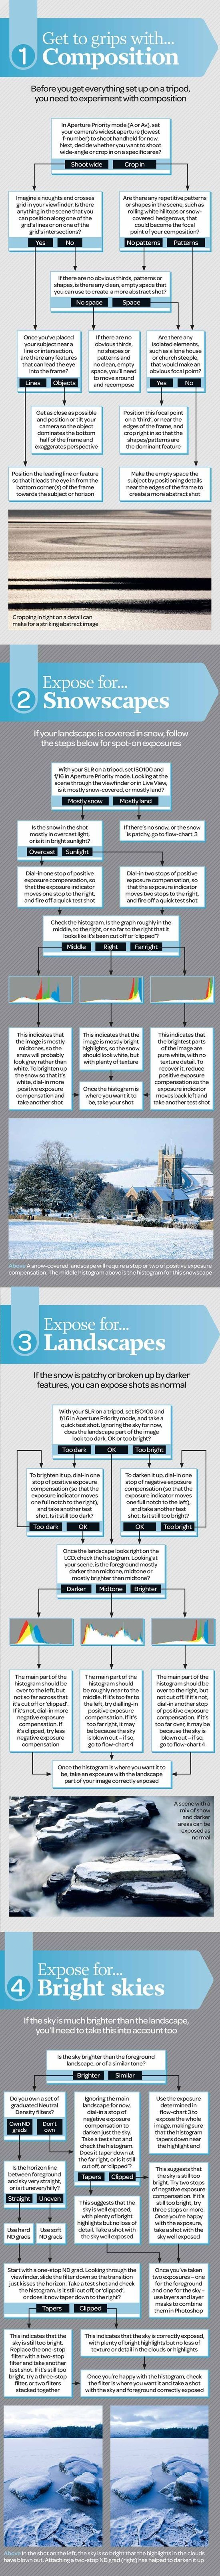 Winter landscape photography cheat sheet: how to c